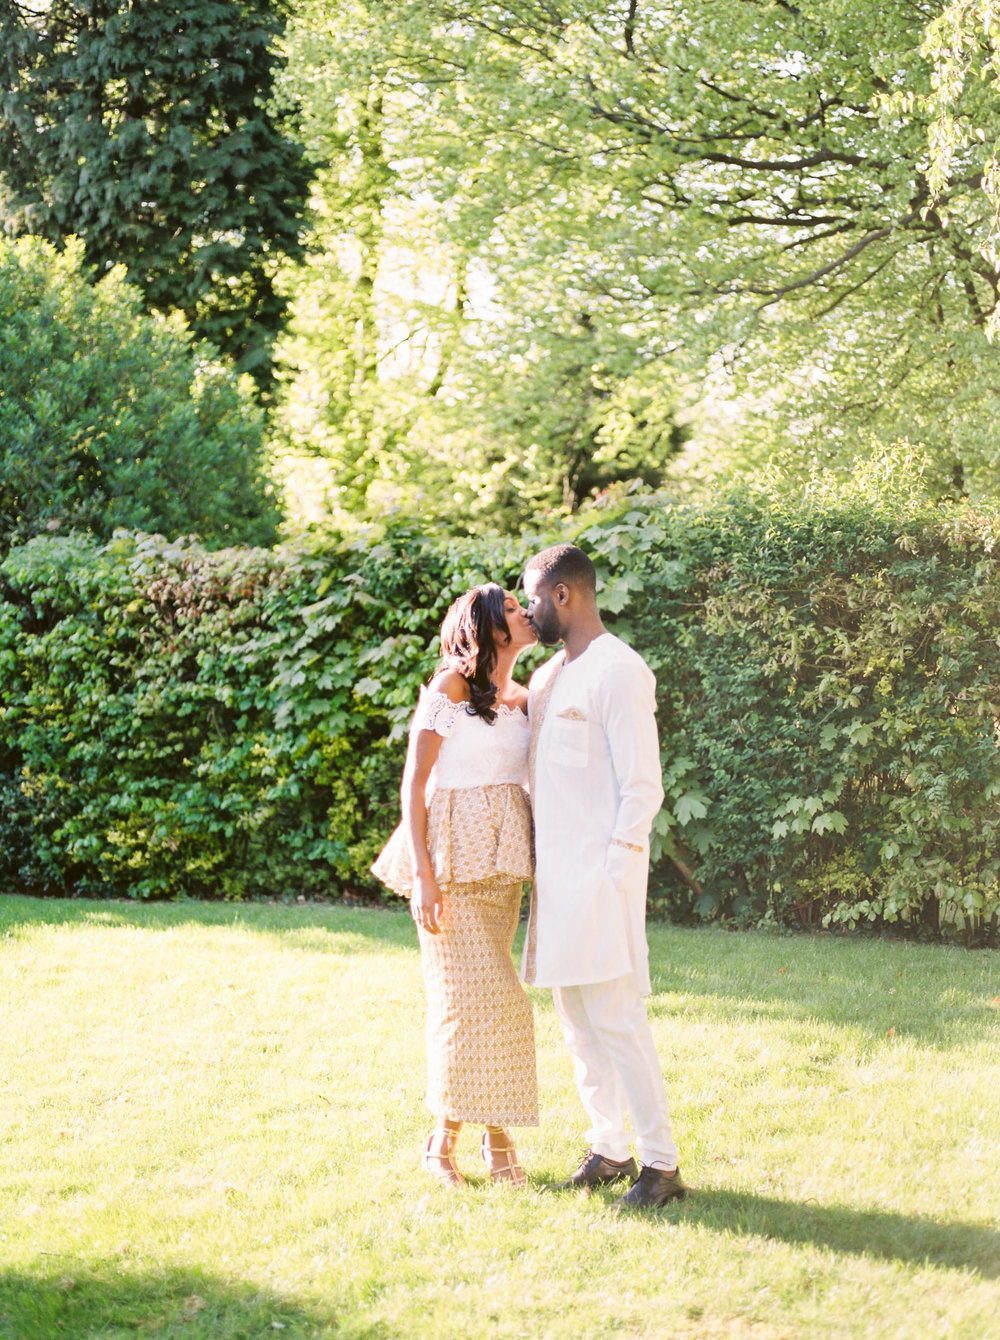 Amy O'Boyle Photography- Destination & UK Fine Art Film Wedding Photographer- London Garden Wedding At Home-12.jpg